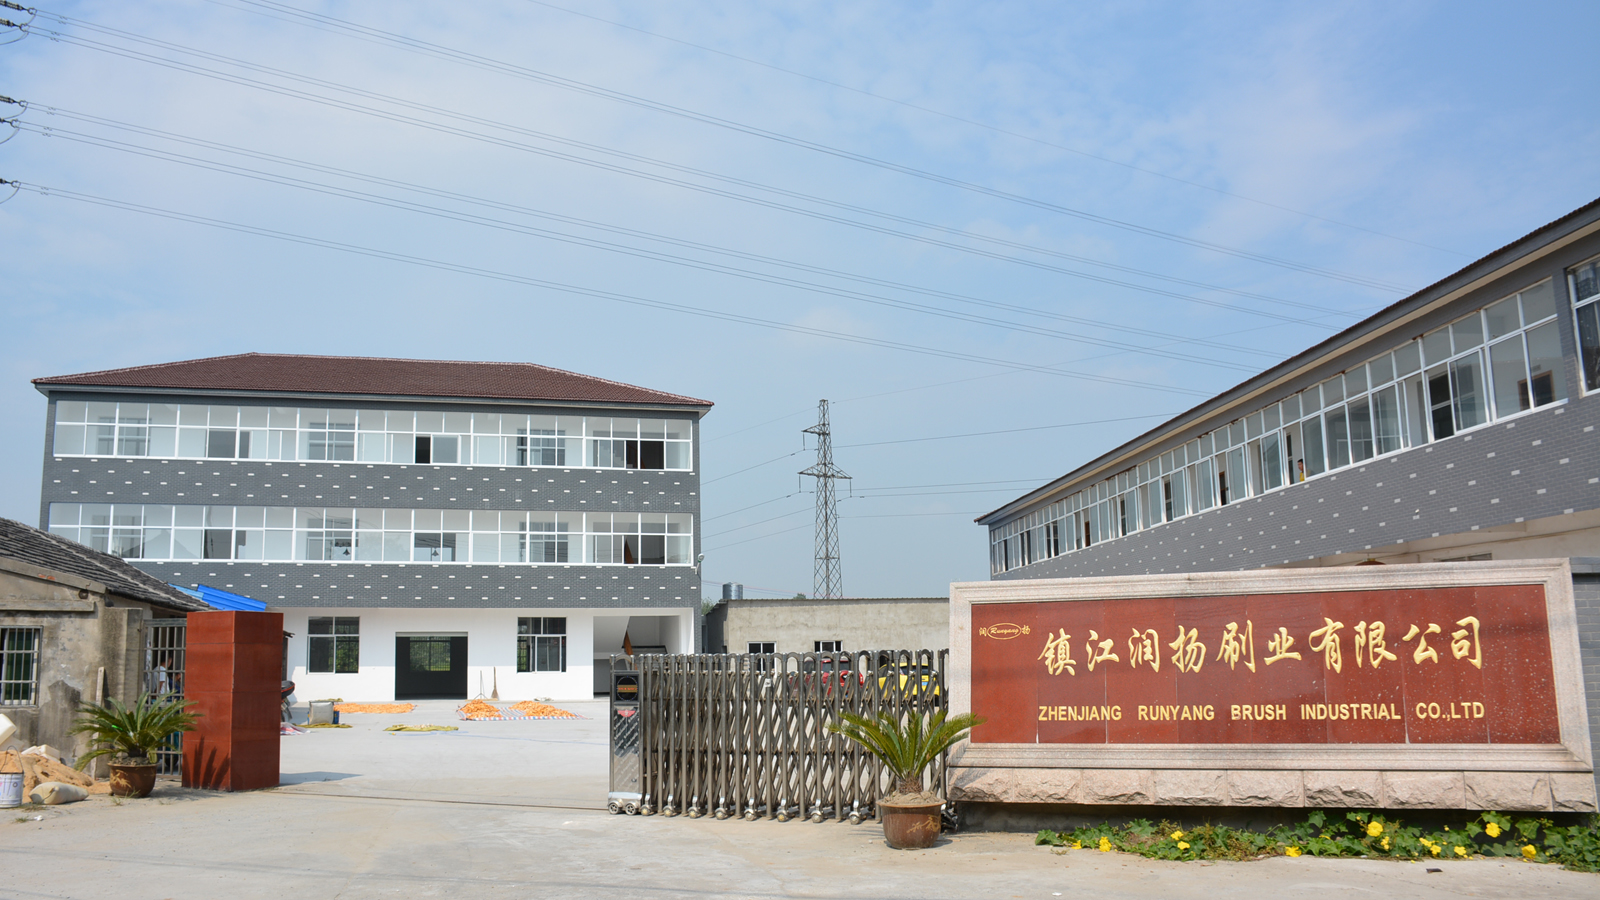 Zhenjiang Runyang Brush Industrial Co. Ltd.